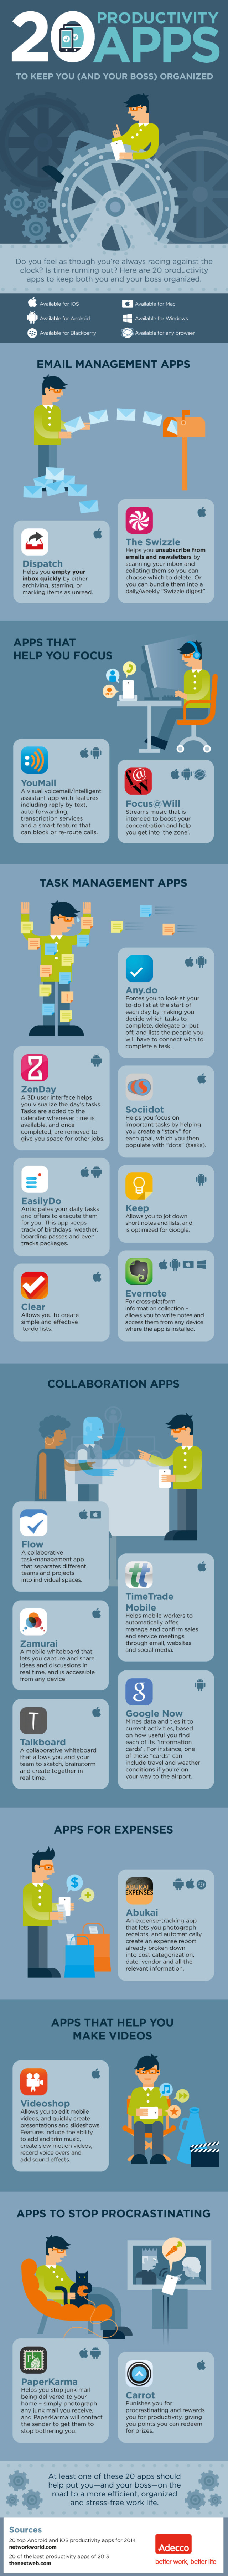 productivity app infographic